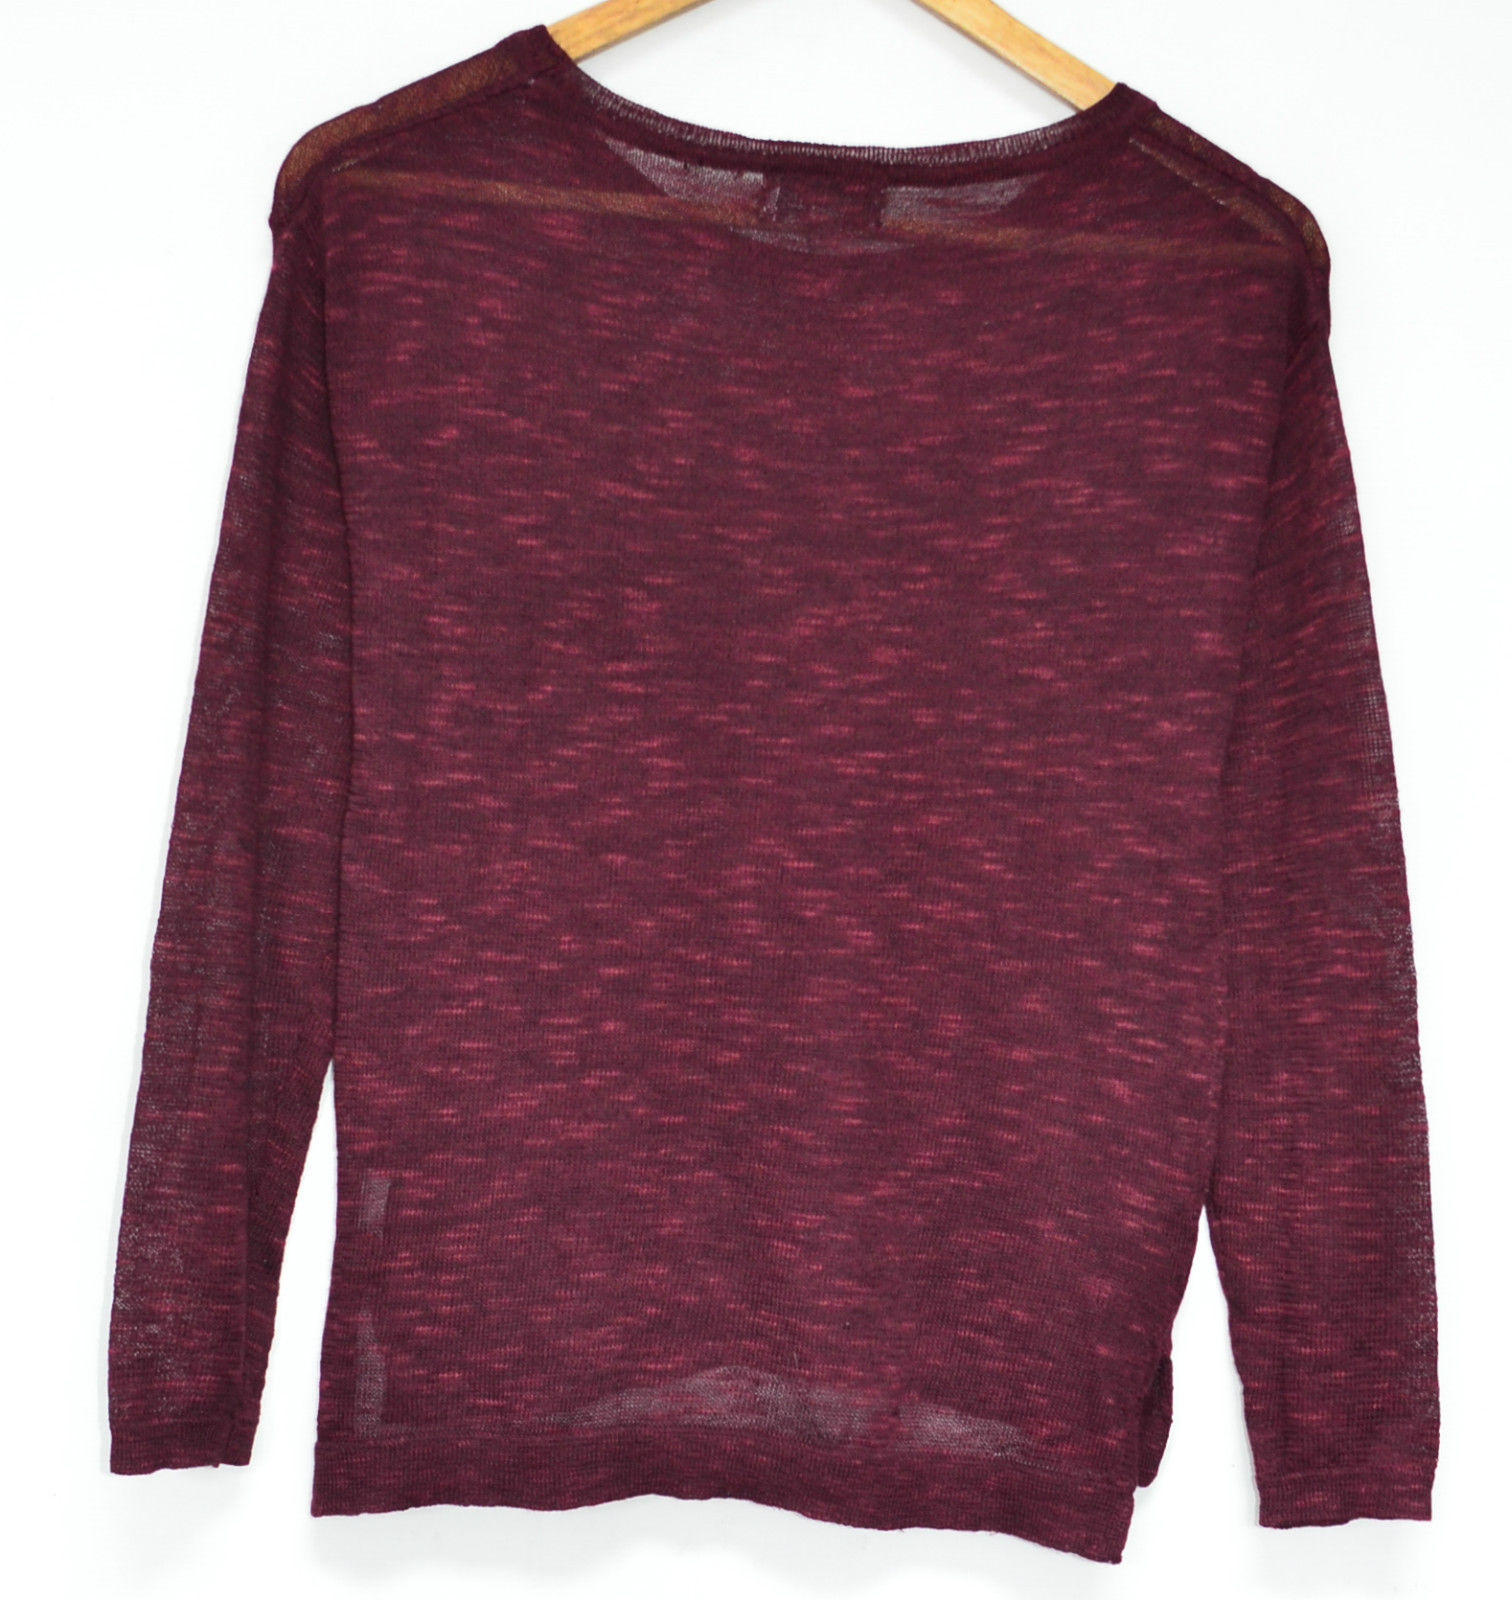 Ladies Long Sleeve Light Burgundy Sweater Womens Knitted Casual ...